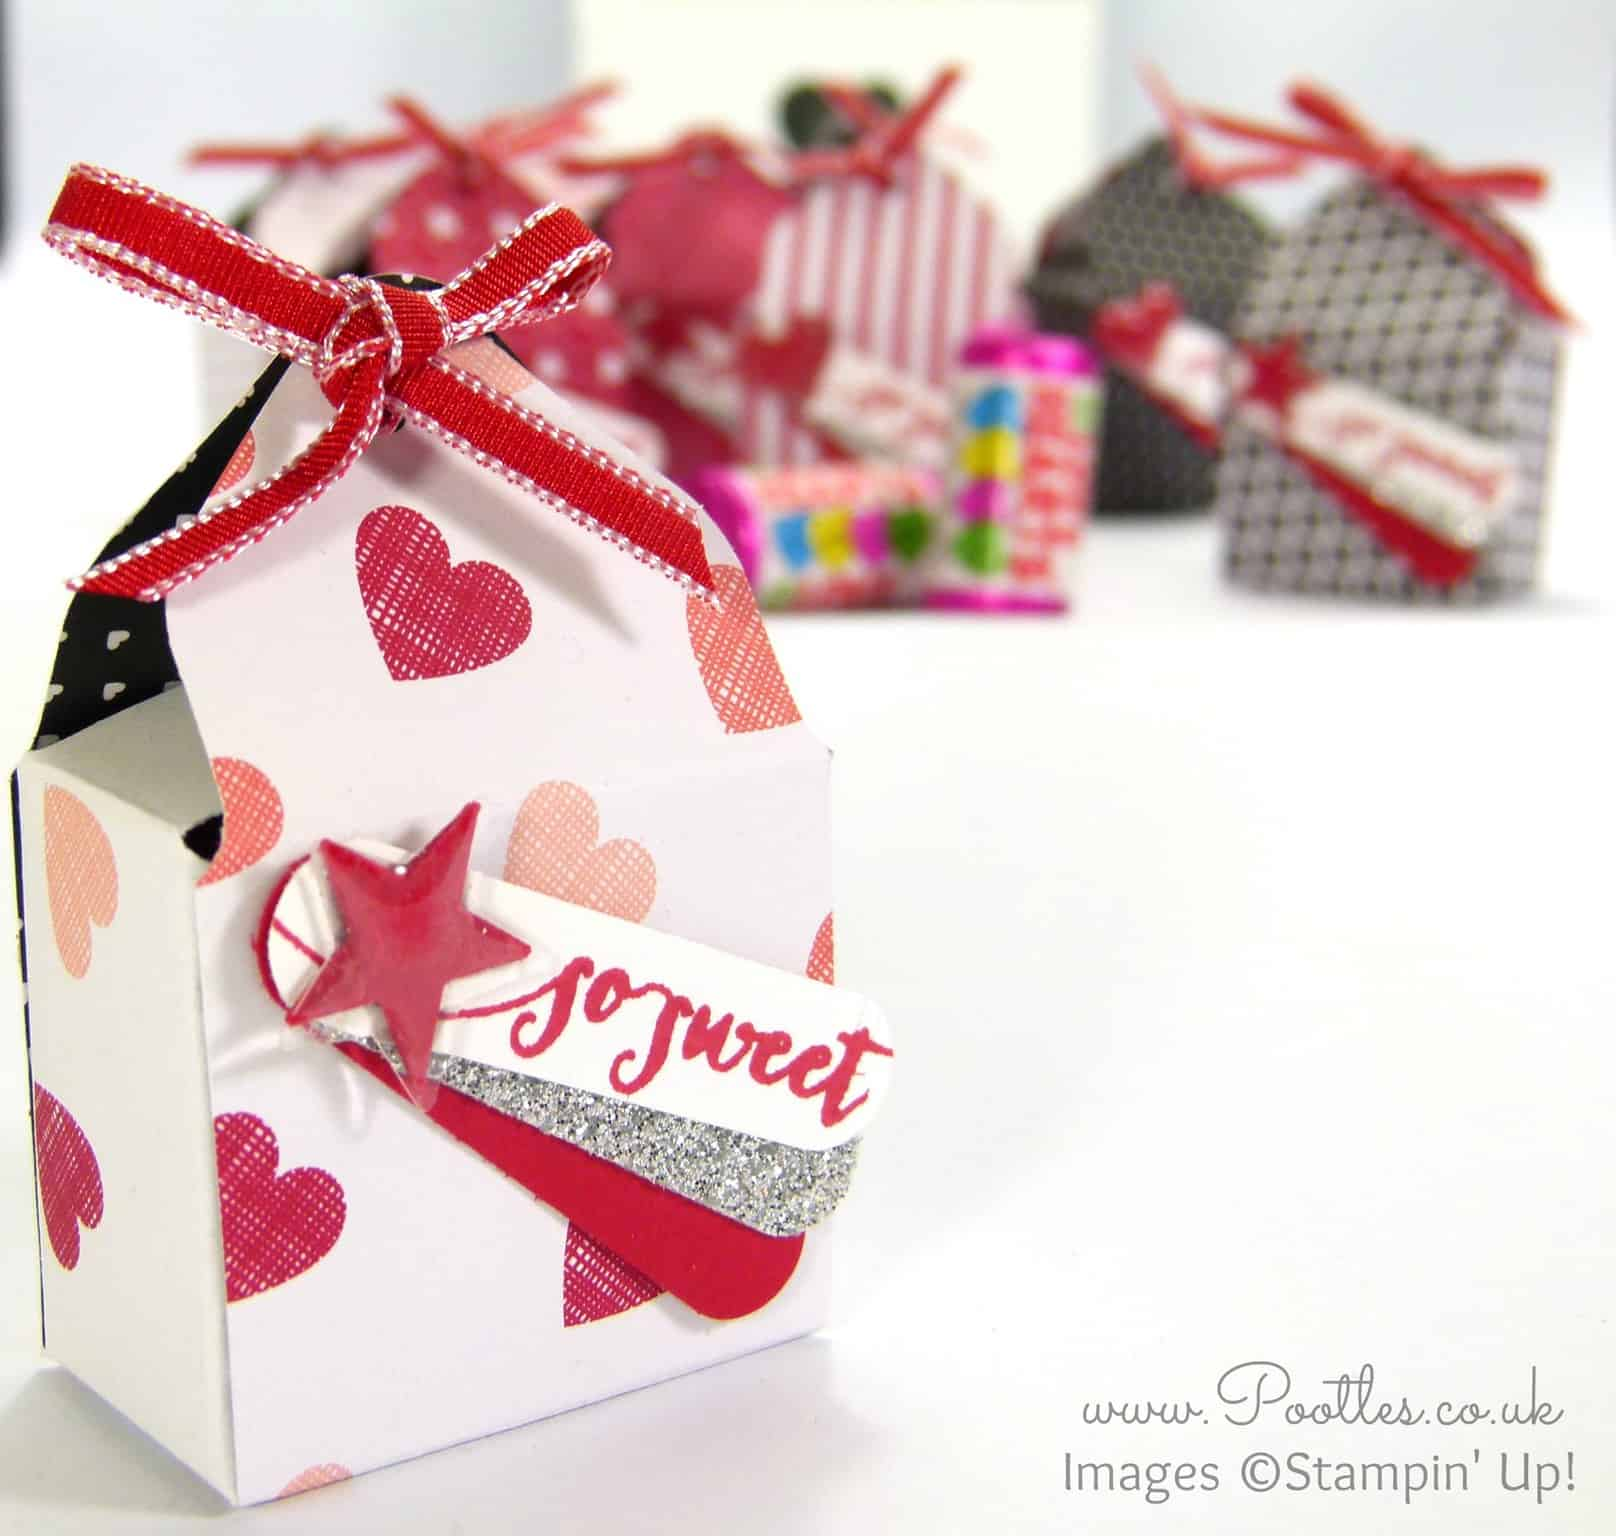 SpringWatch 2015 Envelope Punch Board Love Hearts Box Tutorial